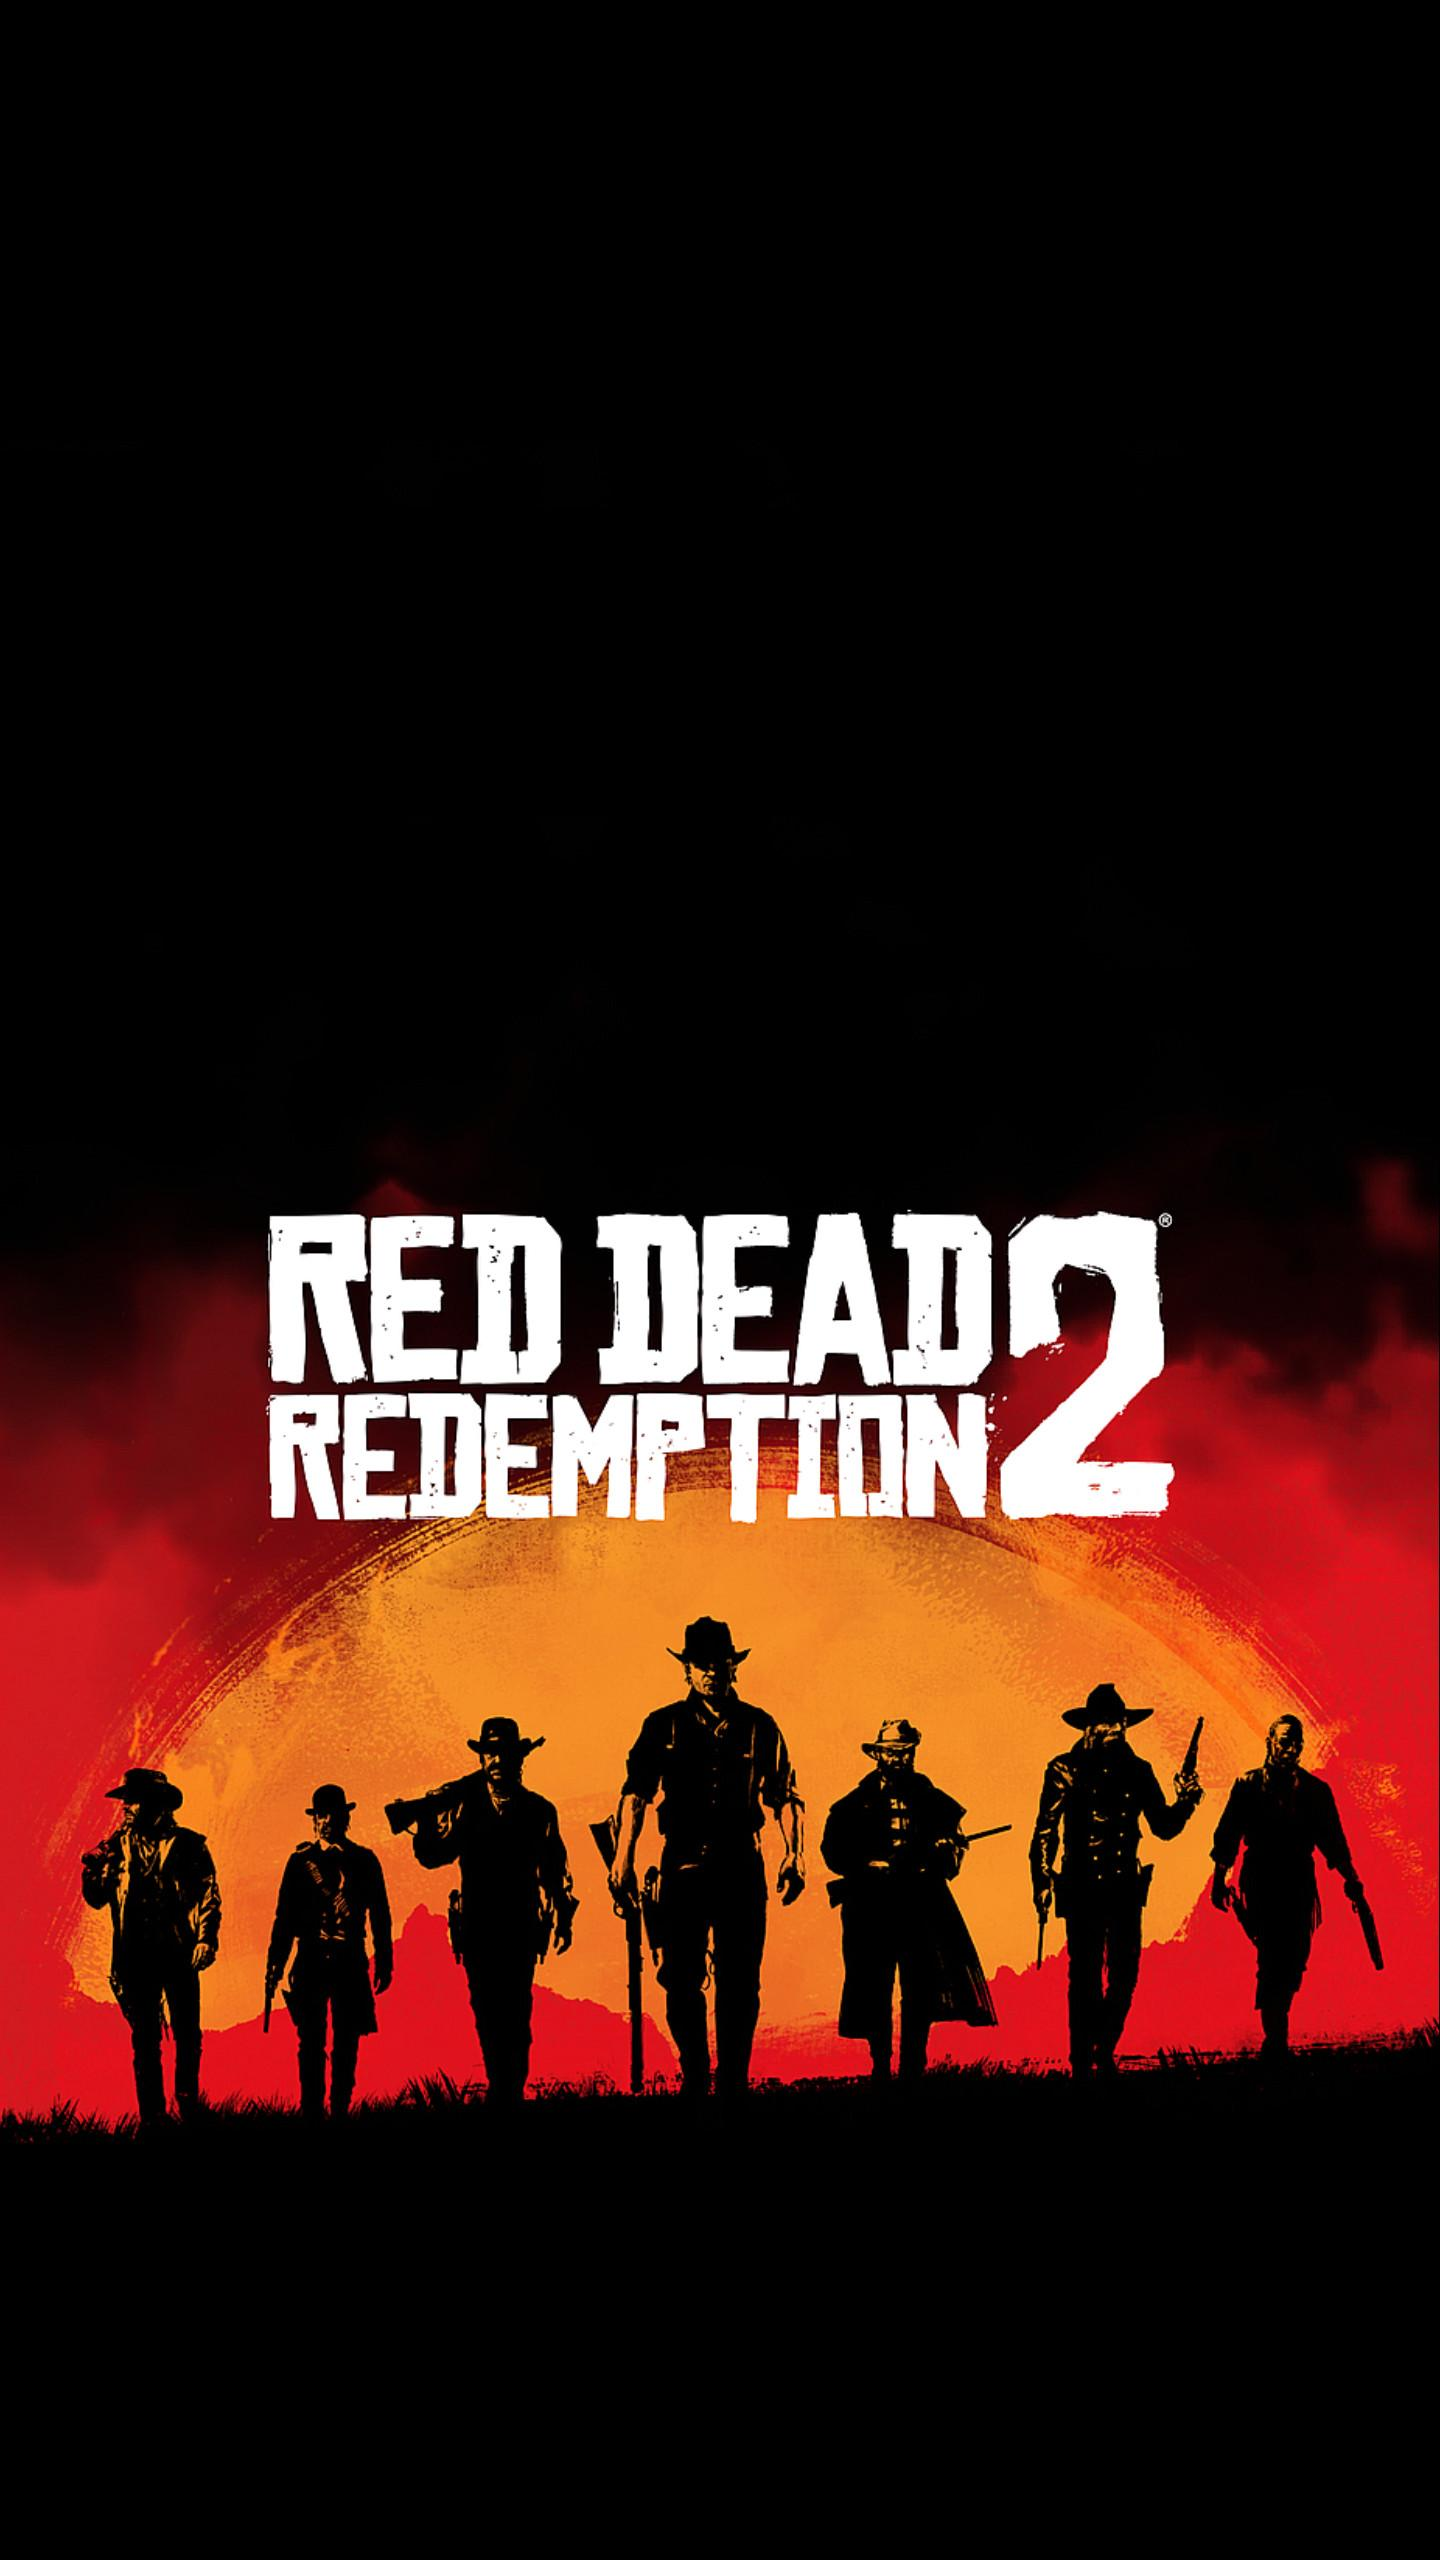 Red Dead Redemption 2 Smartphone Wallpapers Wallpaper Cave